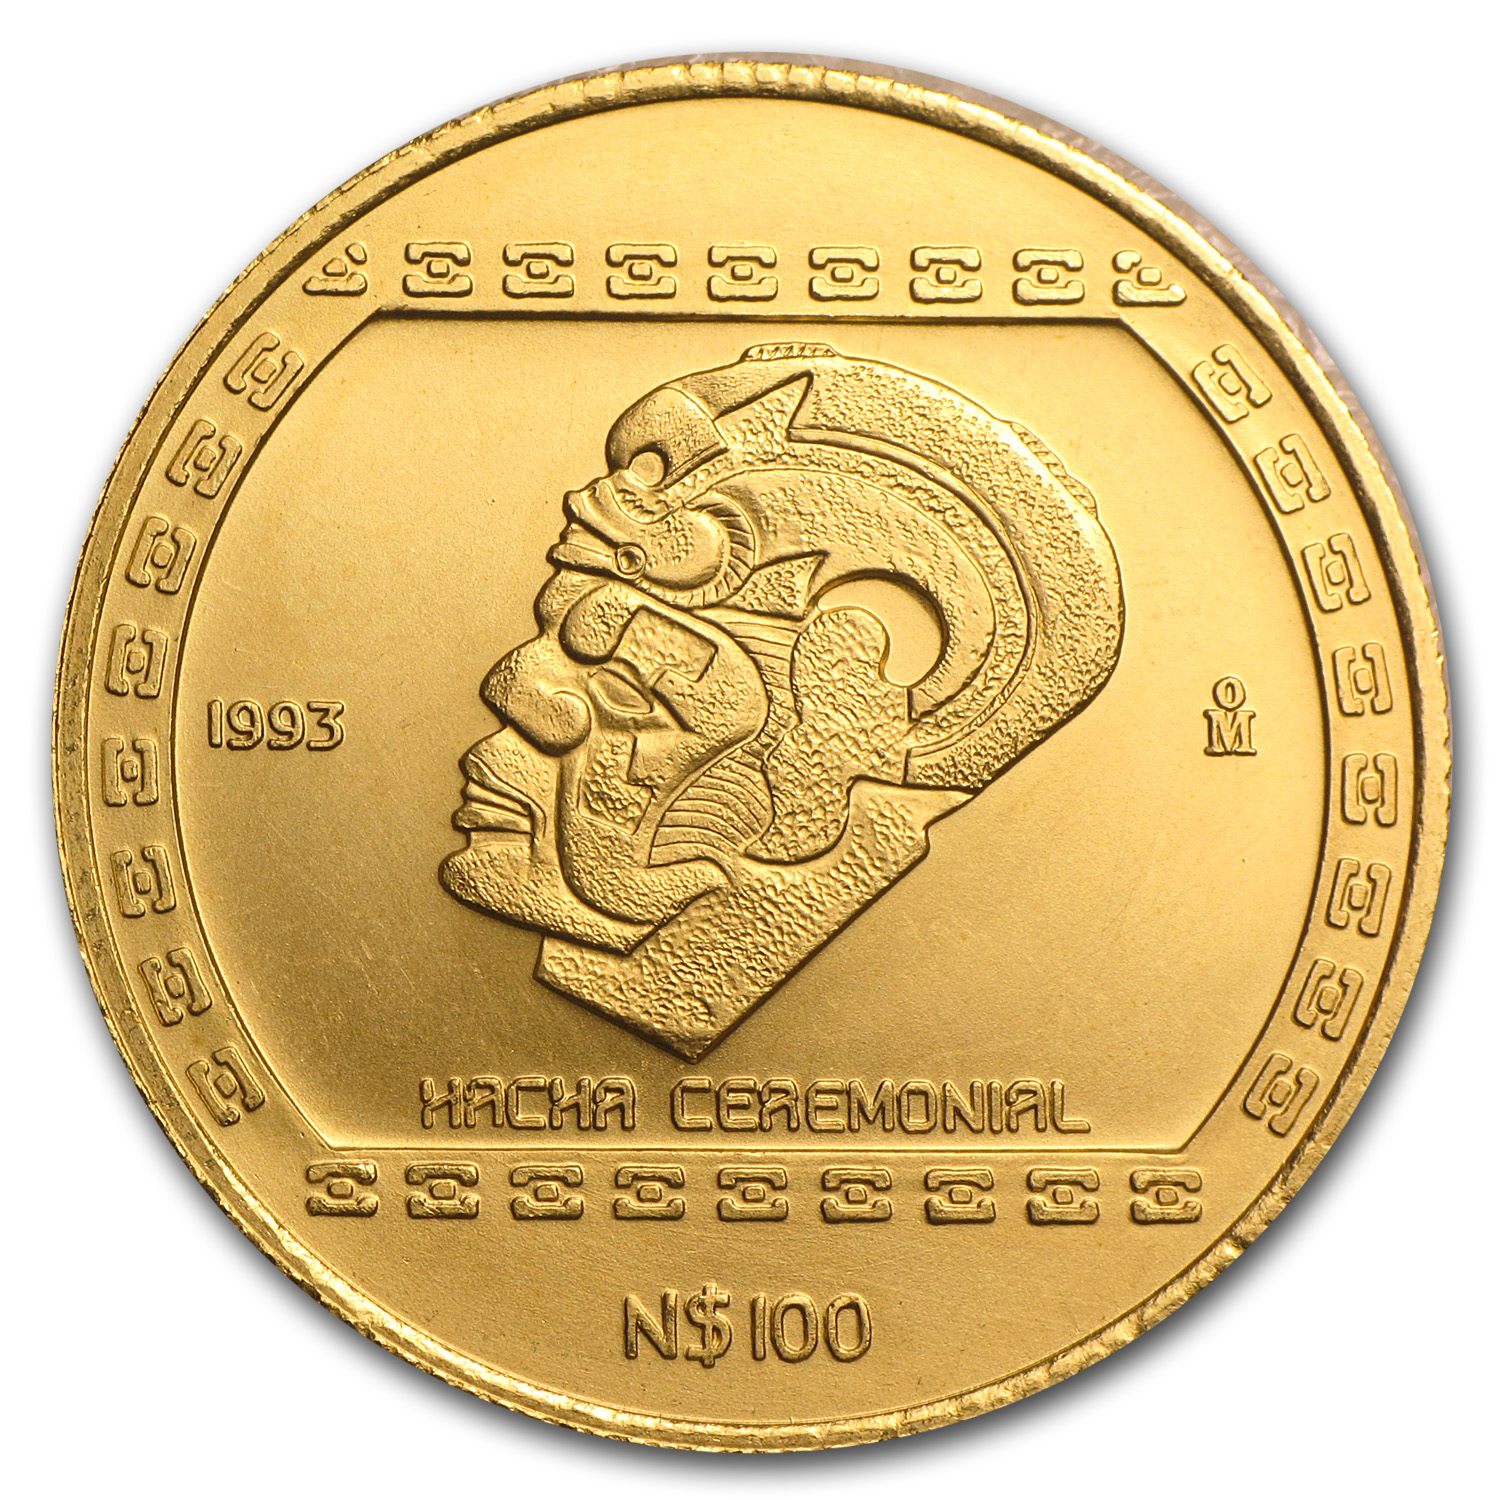 1993 Mexico 100 Pesos Gold Hacha Ceremonial BU